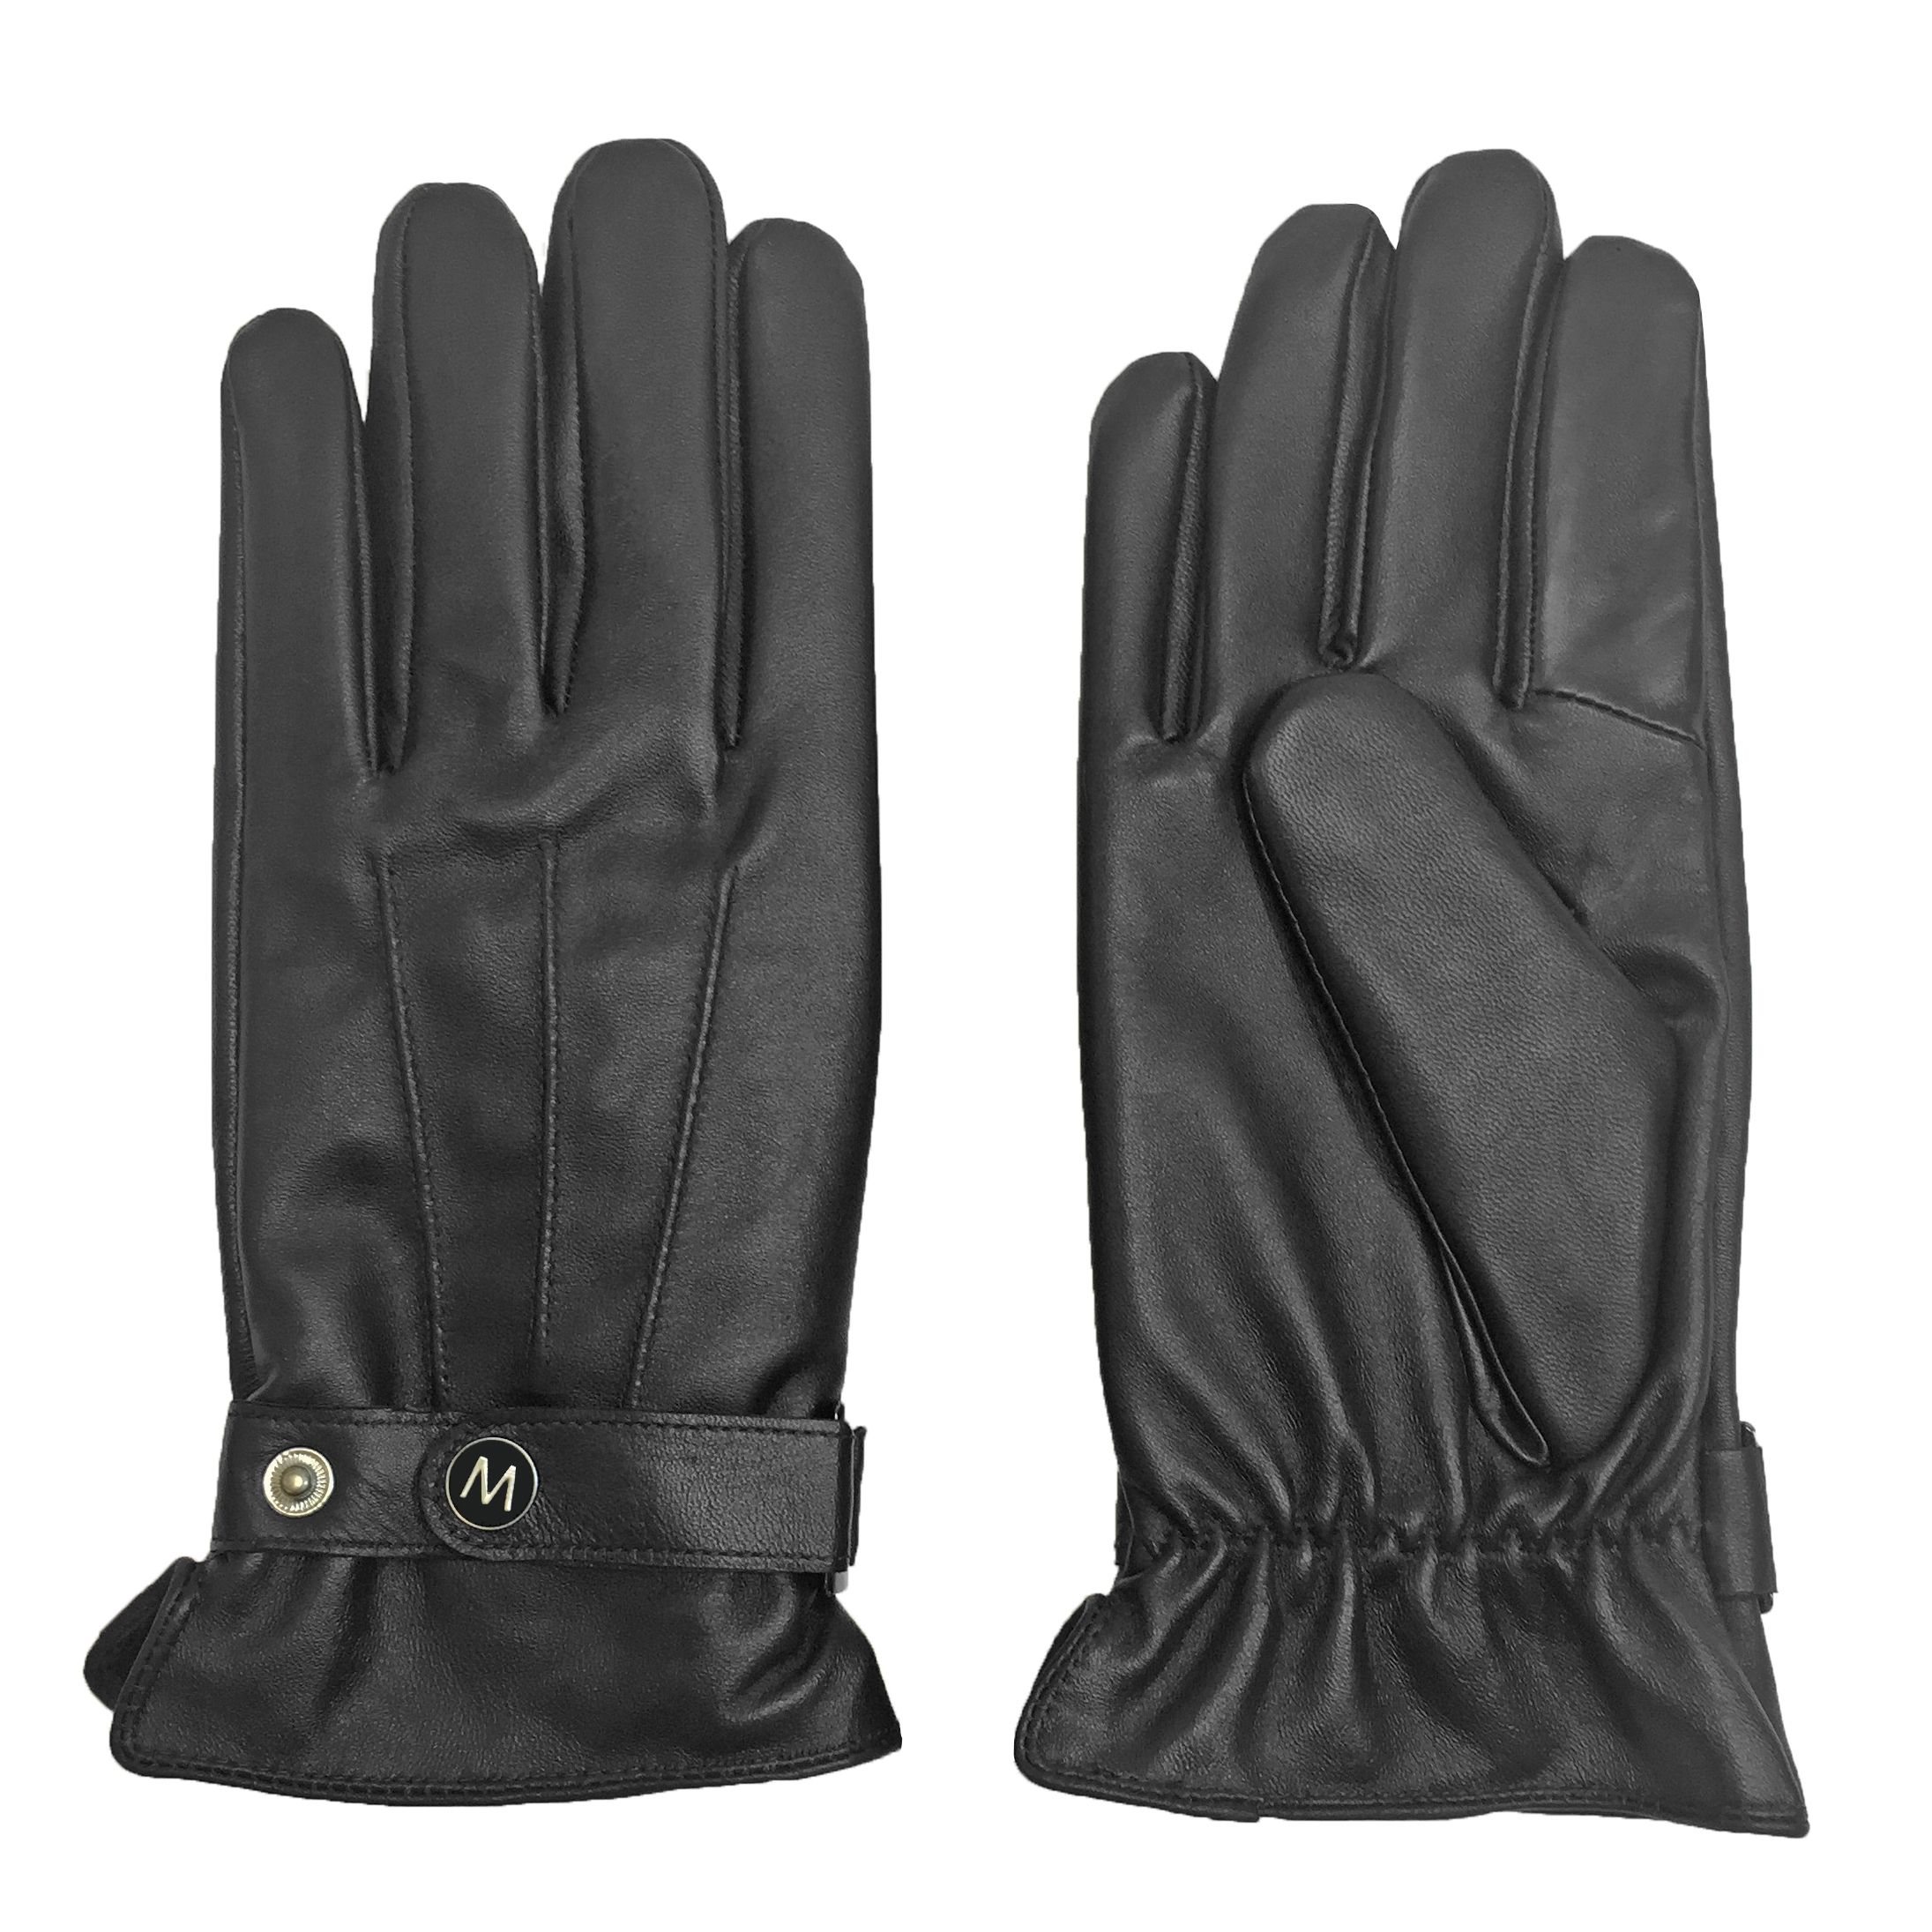 MoDA Mr. Chicago Best Winter Cold Weather Men's Genuine Leather Gloves with Touch function